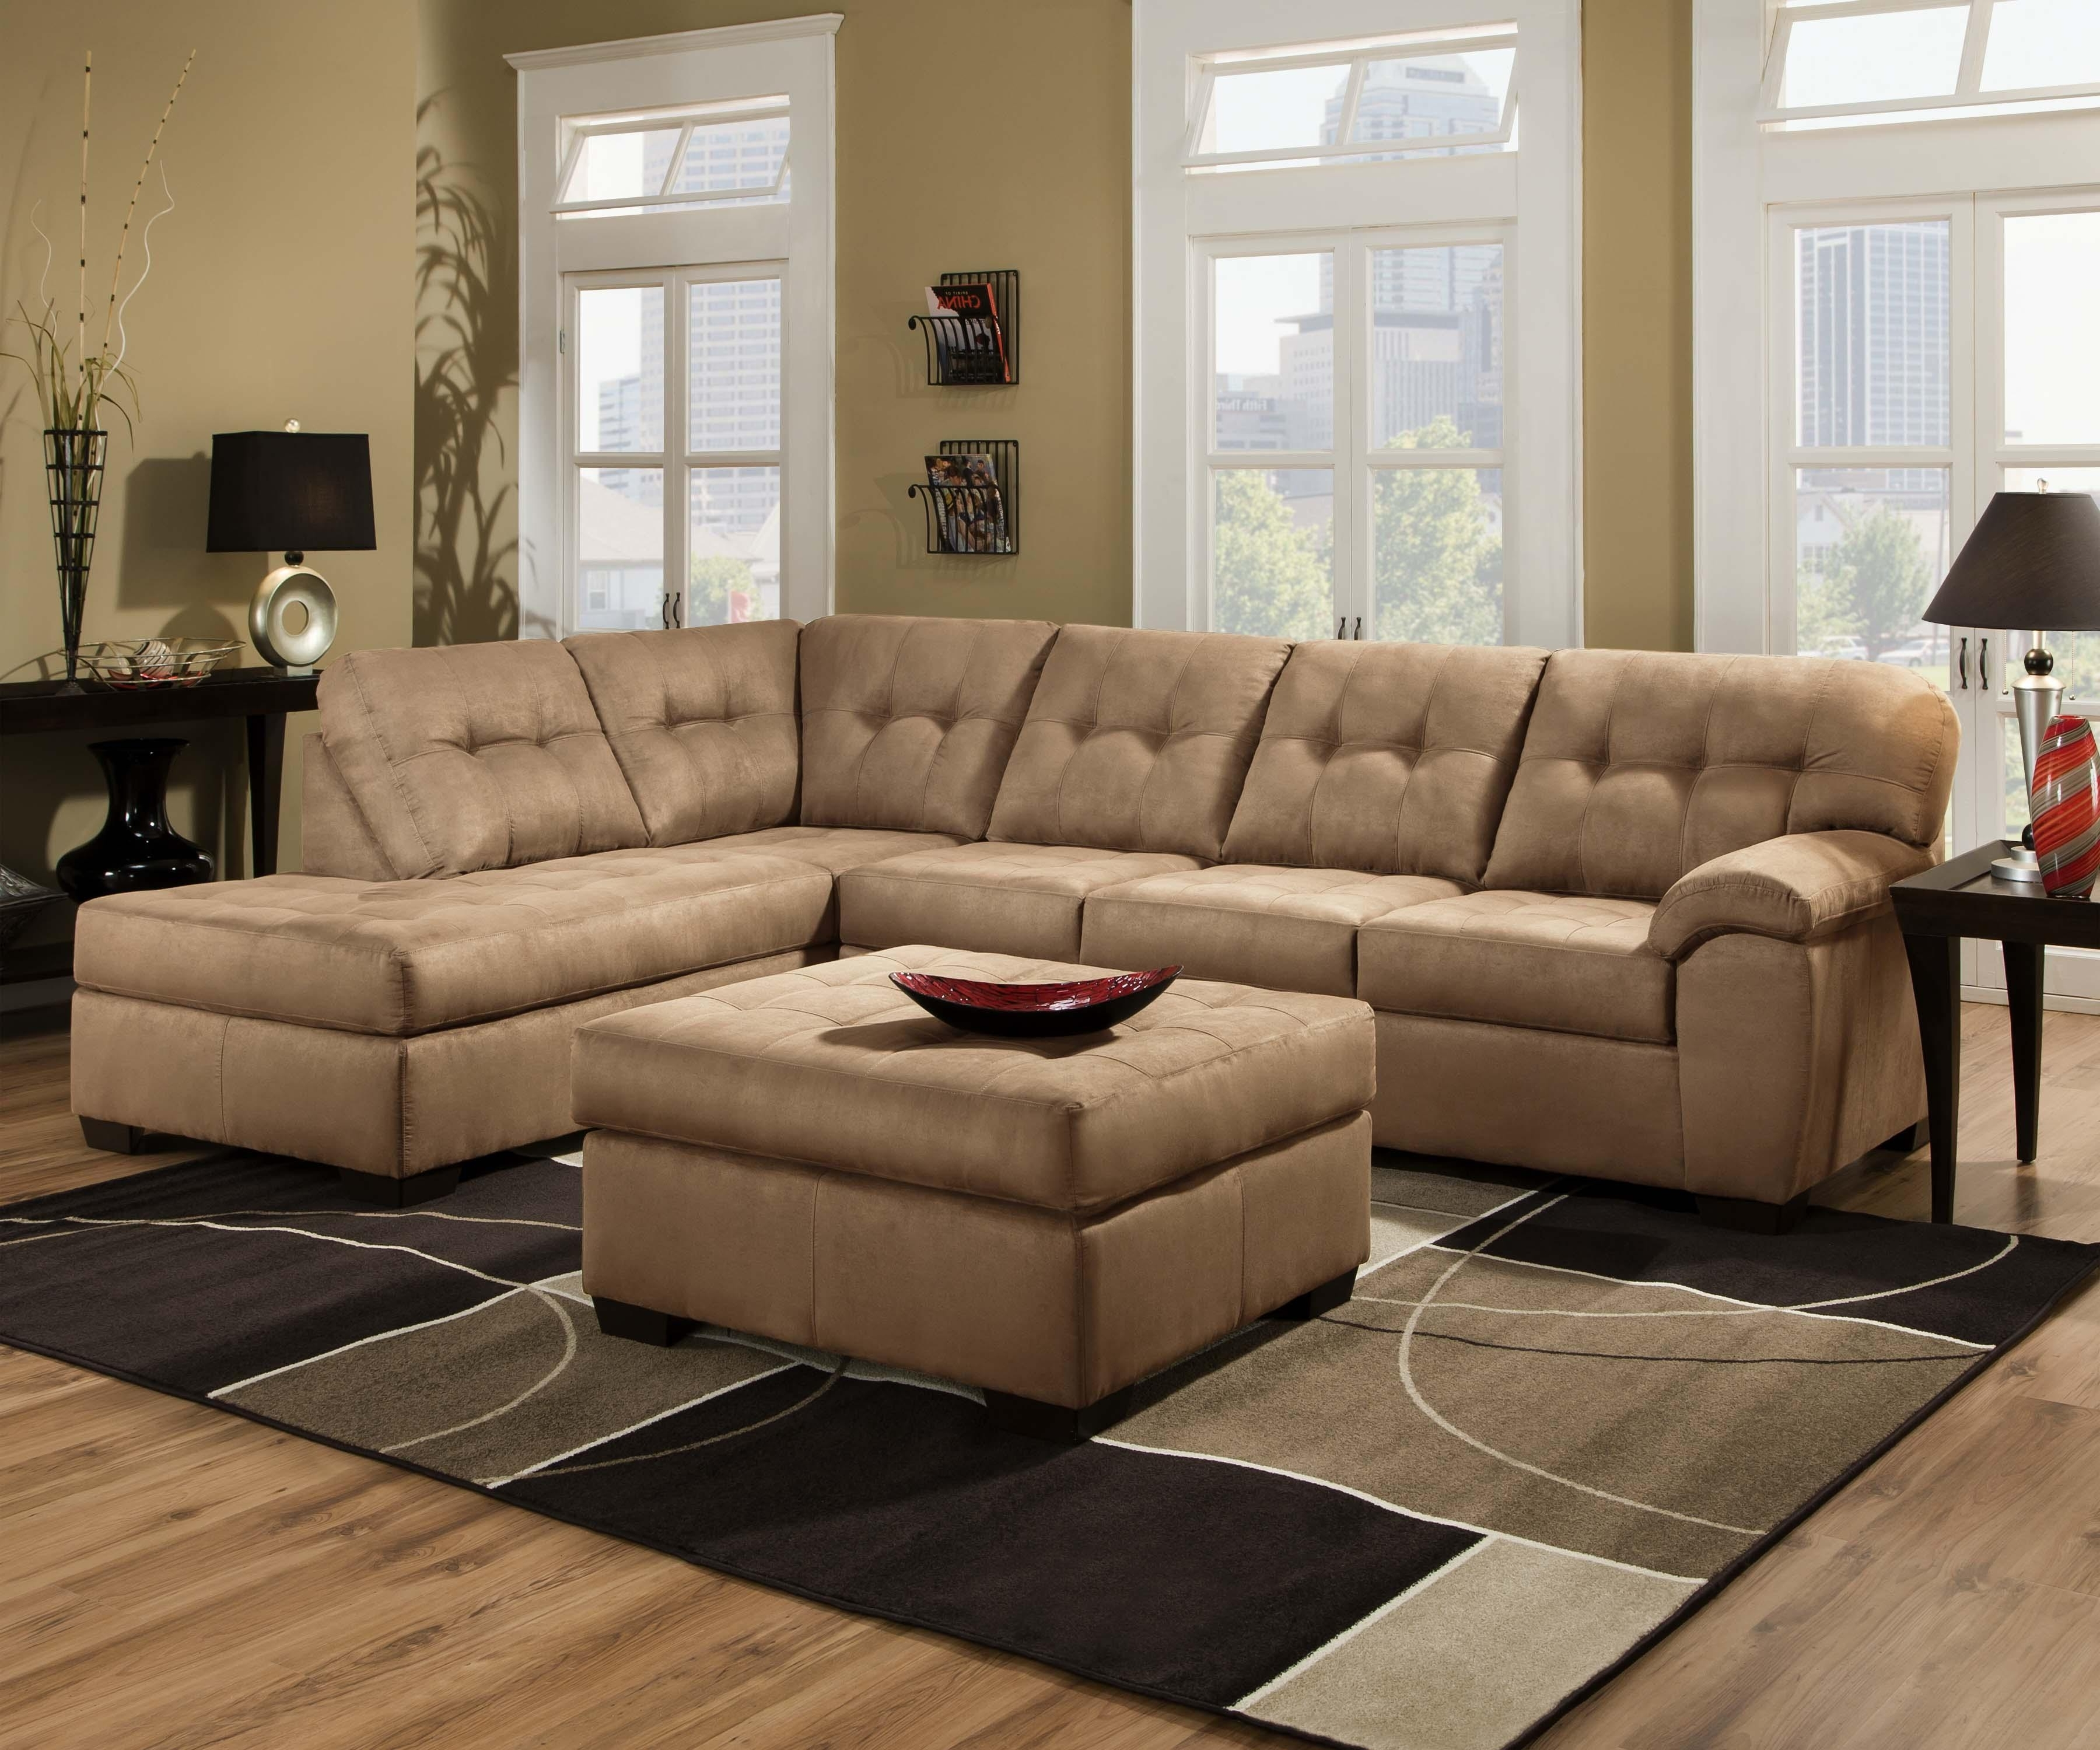 United Furniture Industries 9558 Transitional 2 Piece Sectional With Regard To 2019 Jacksonville Nc Sectional Sofas (View 18 of 20)